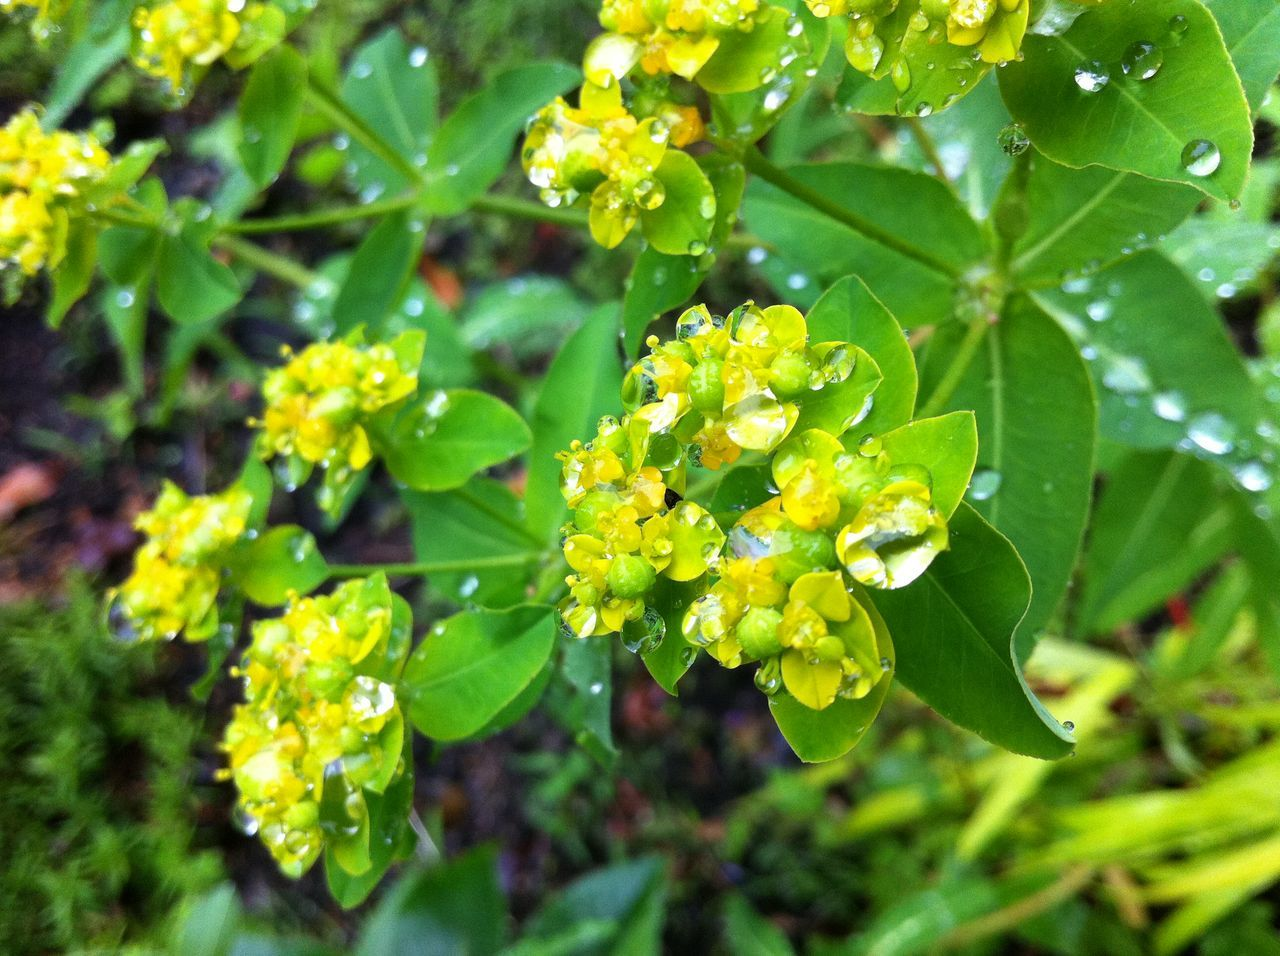 green color, leaf, plant, growth, nature, beauty in nature, day, outdoors, no people, fragility, flower, freshness, close-up, flower head